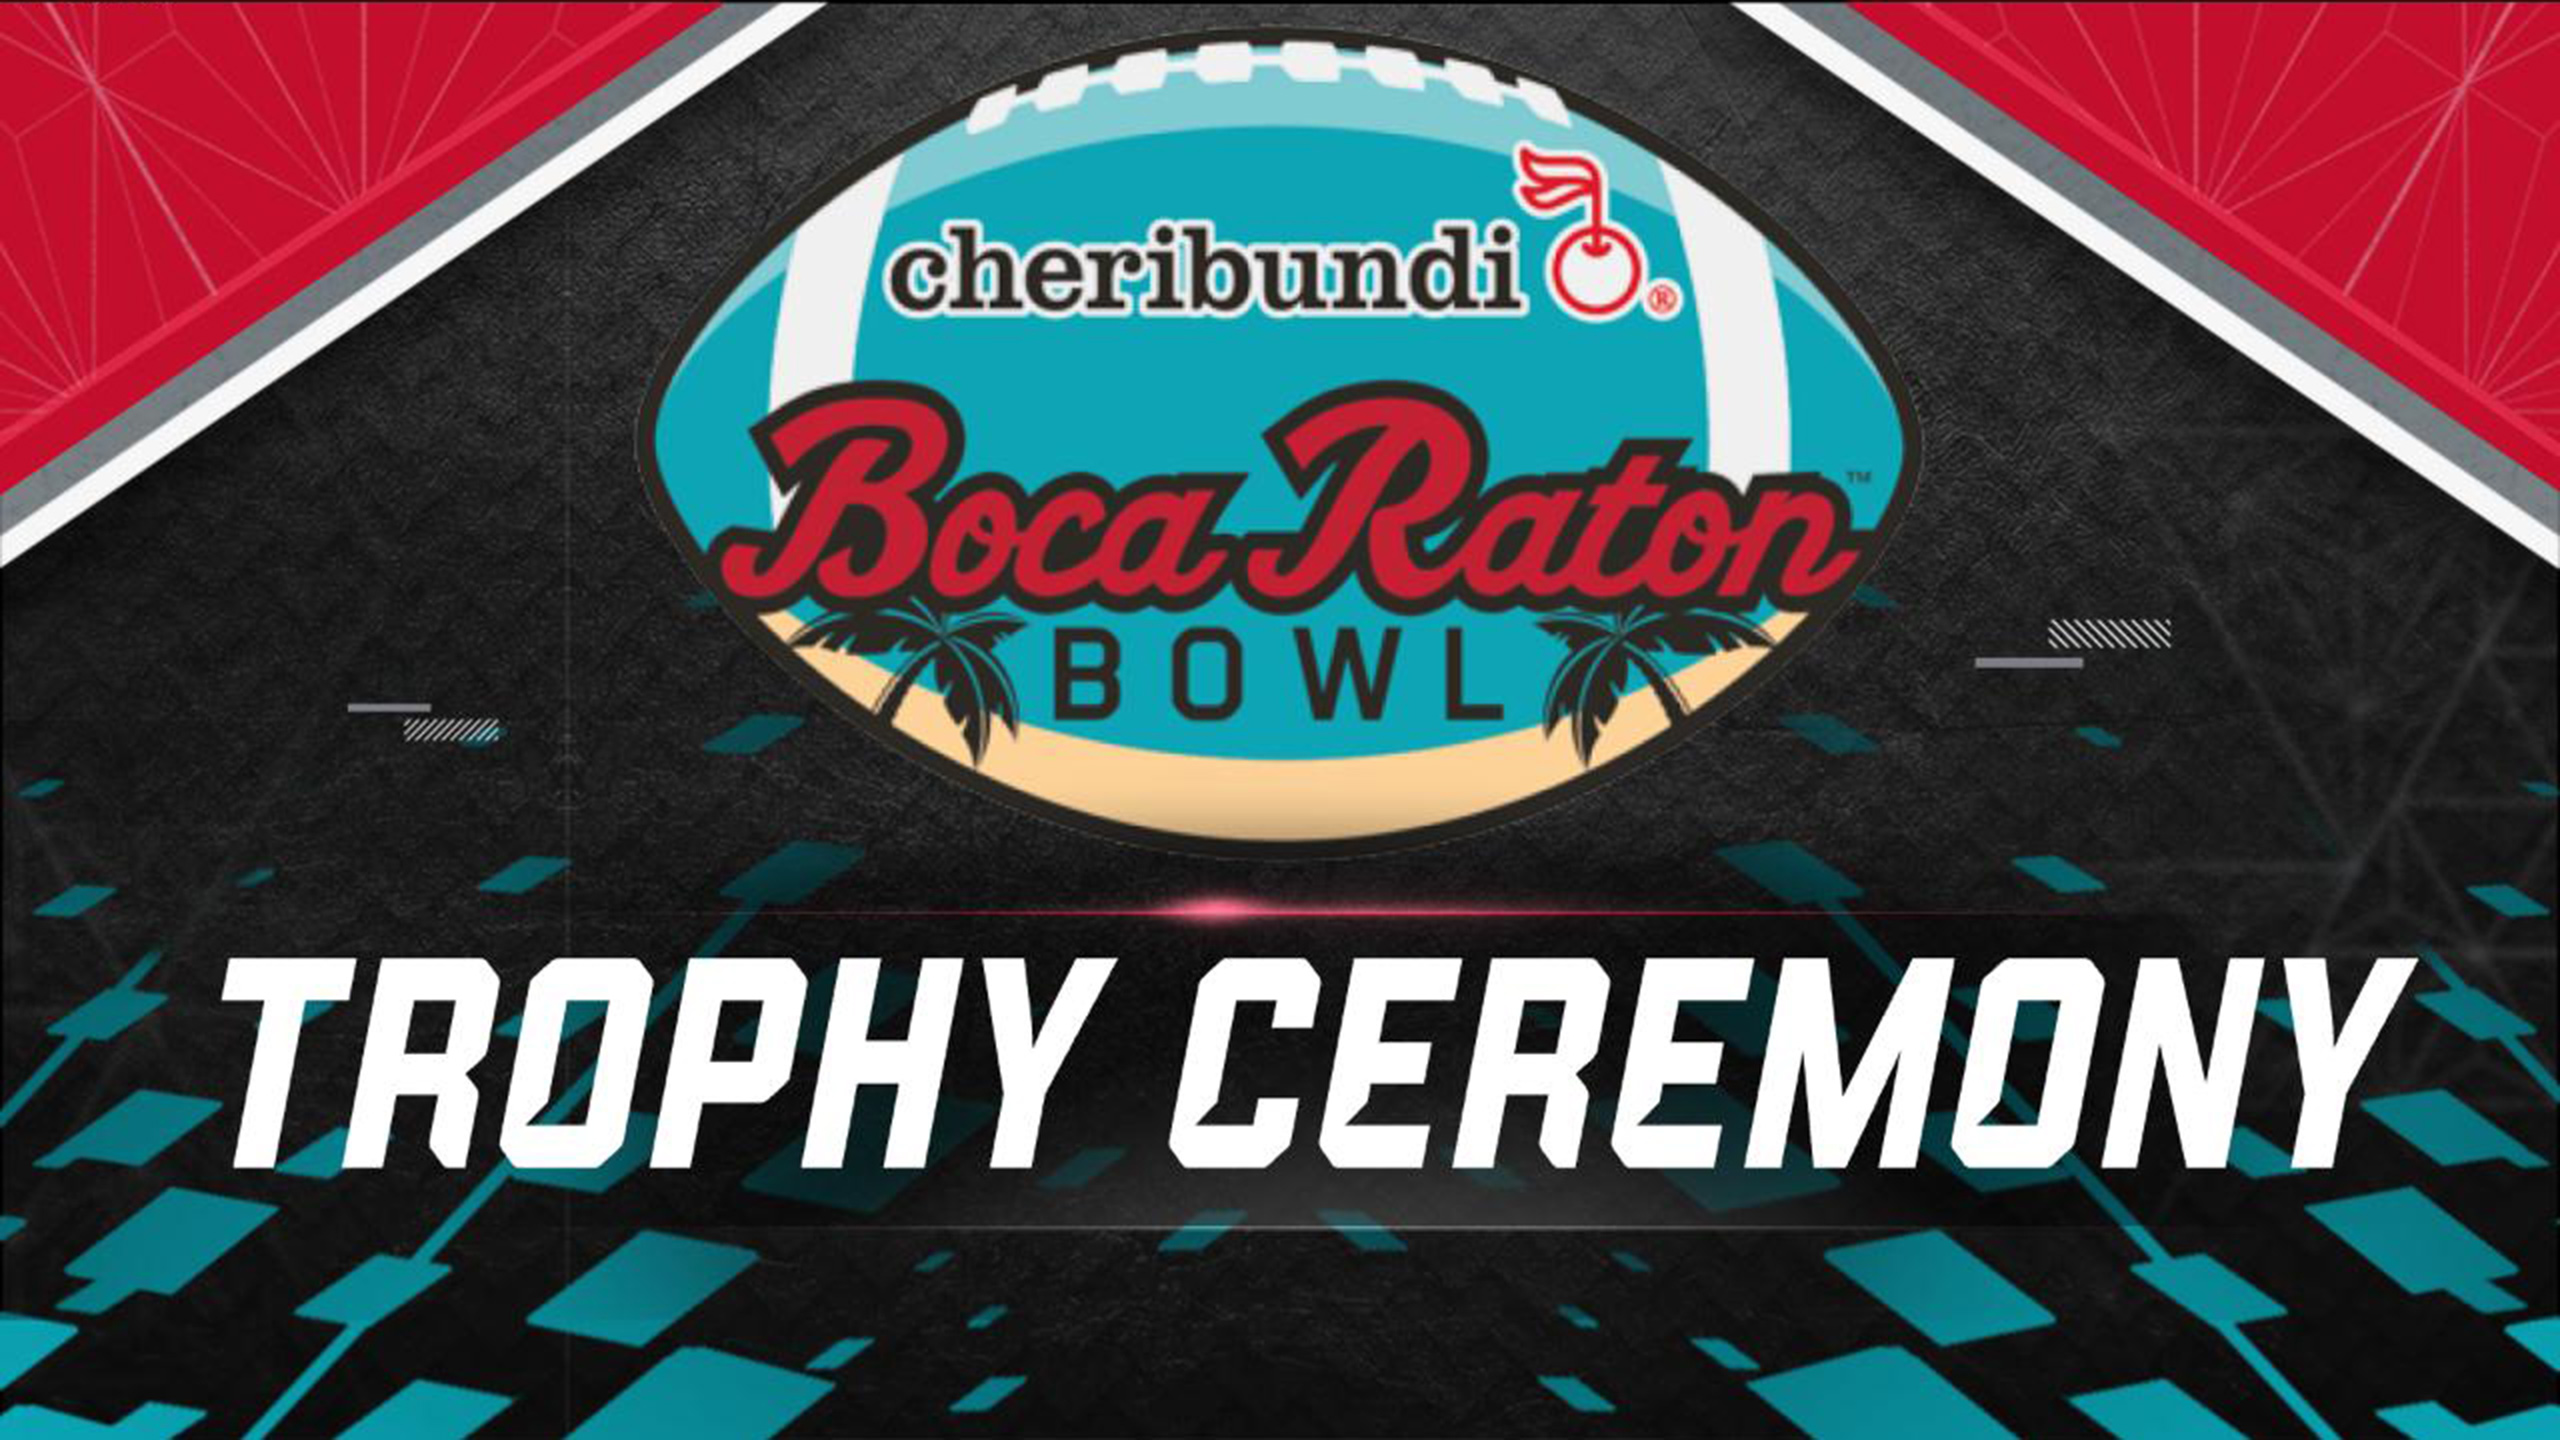 Cheribundi Boca Raton Bowl Trophy Ceremony Presented by Capital One